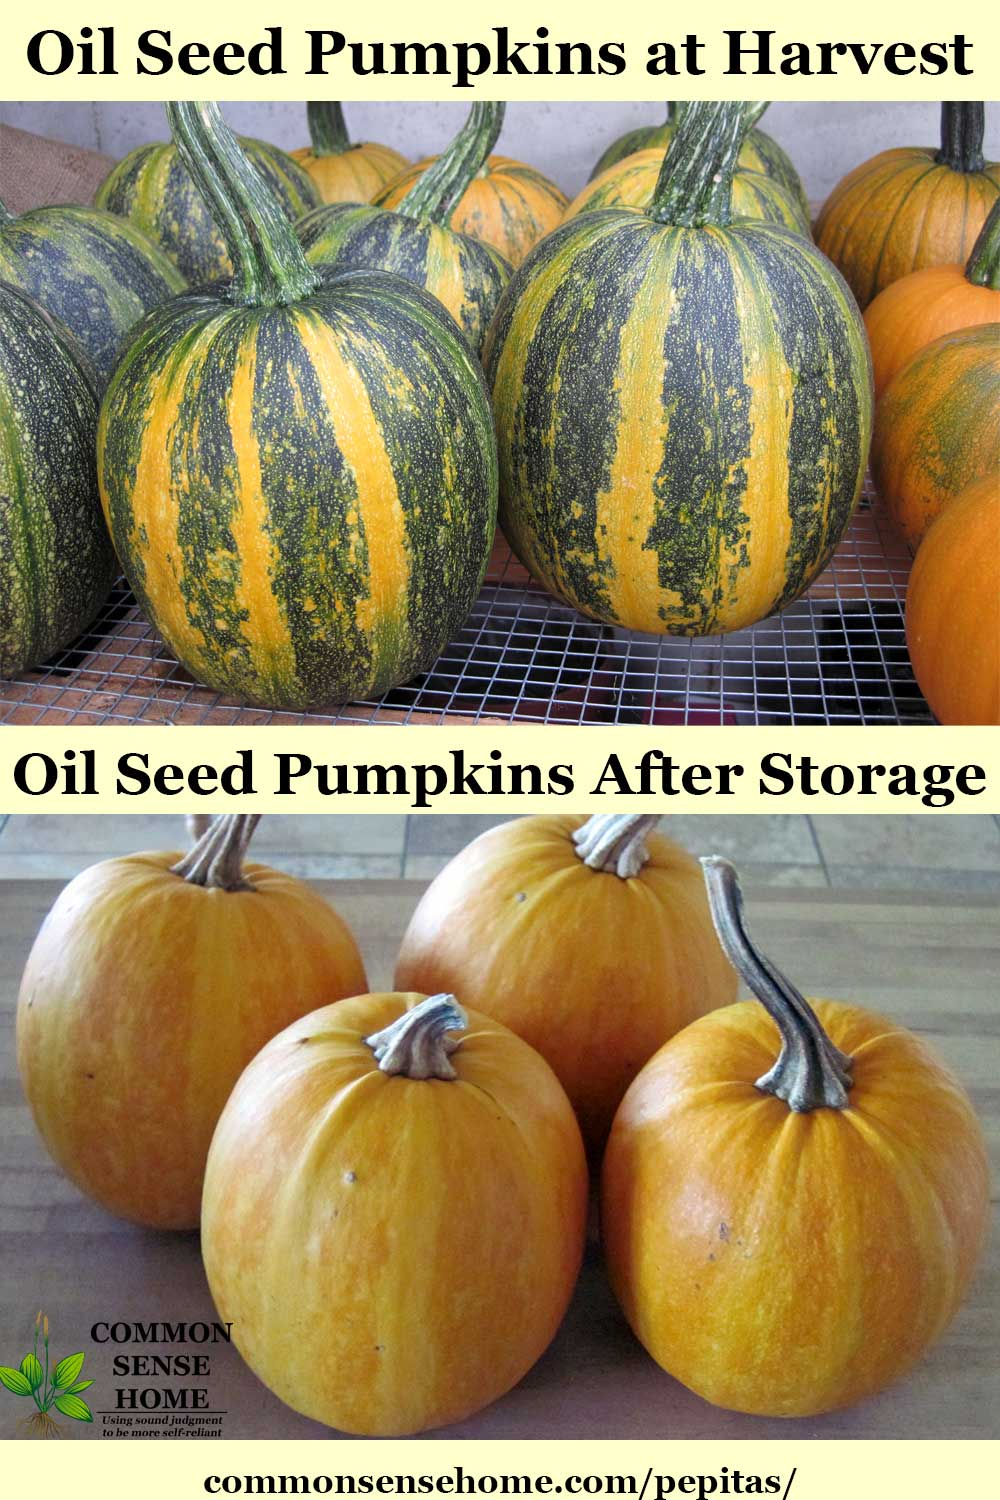 Oilseed pumpkins before and after storage